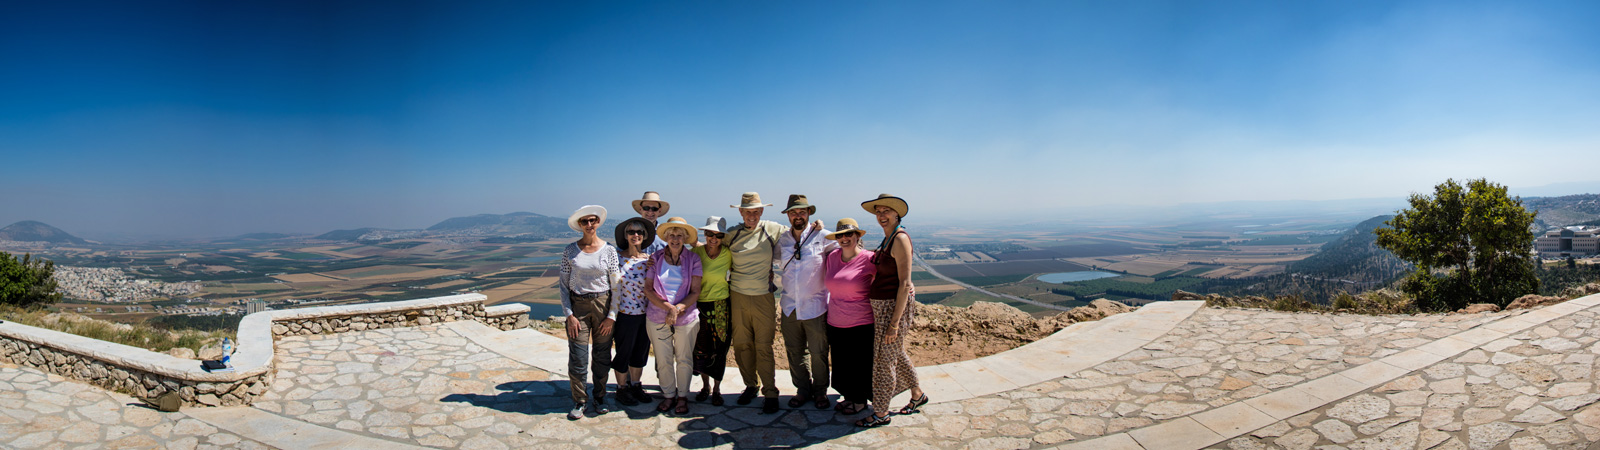 Then for lunch we went to a nearby vista that looks over both the Jezreel Valley and the city of Nazareth.